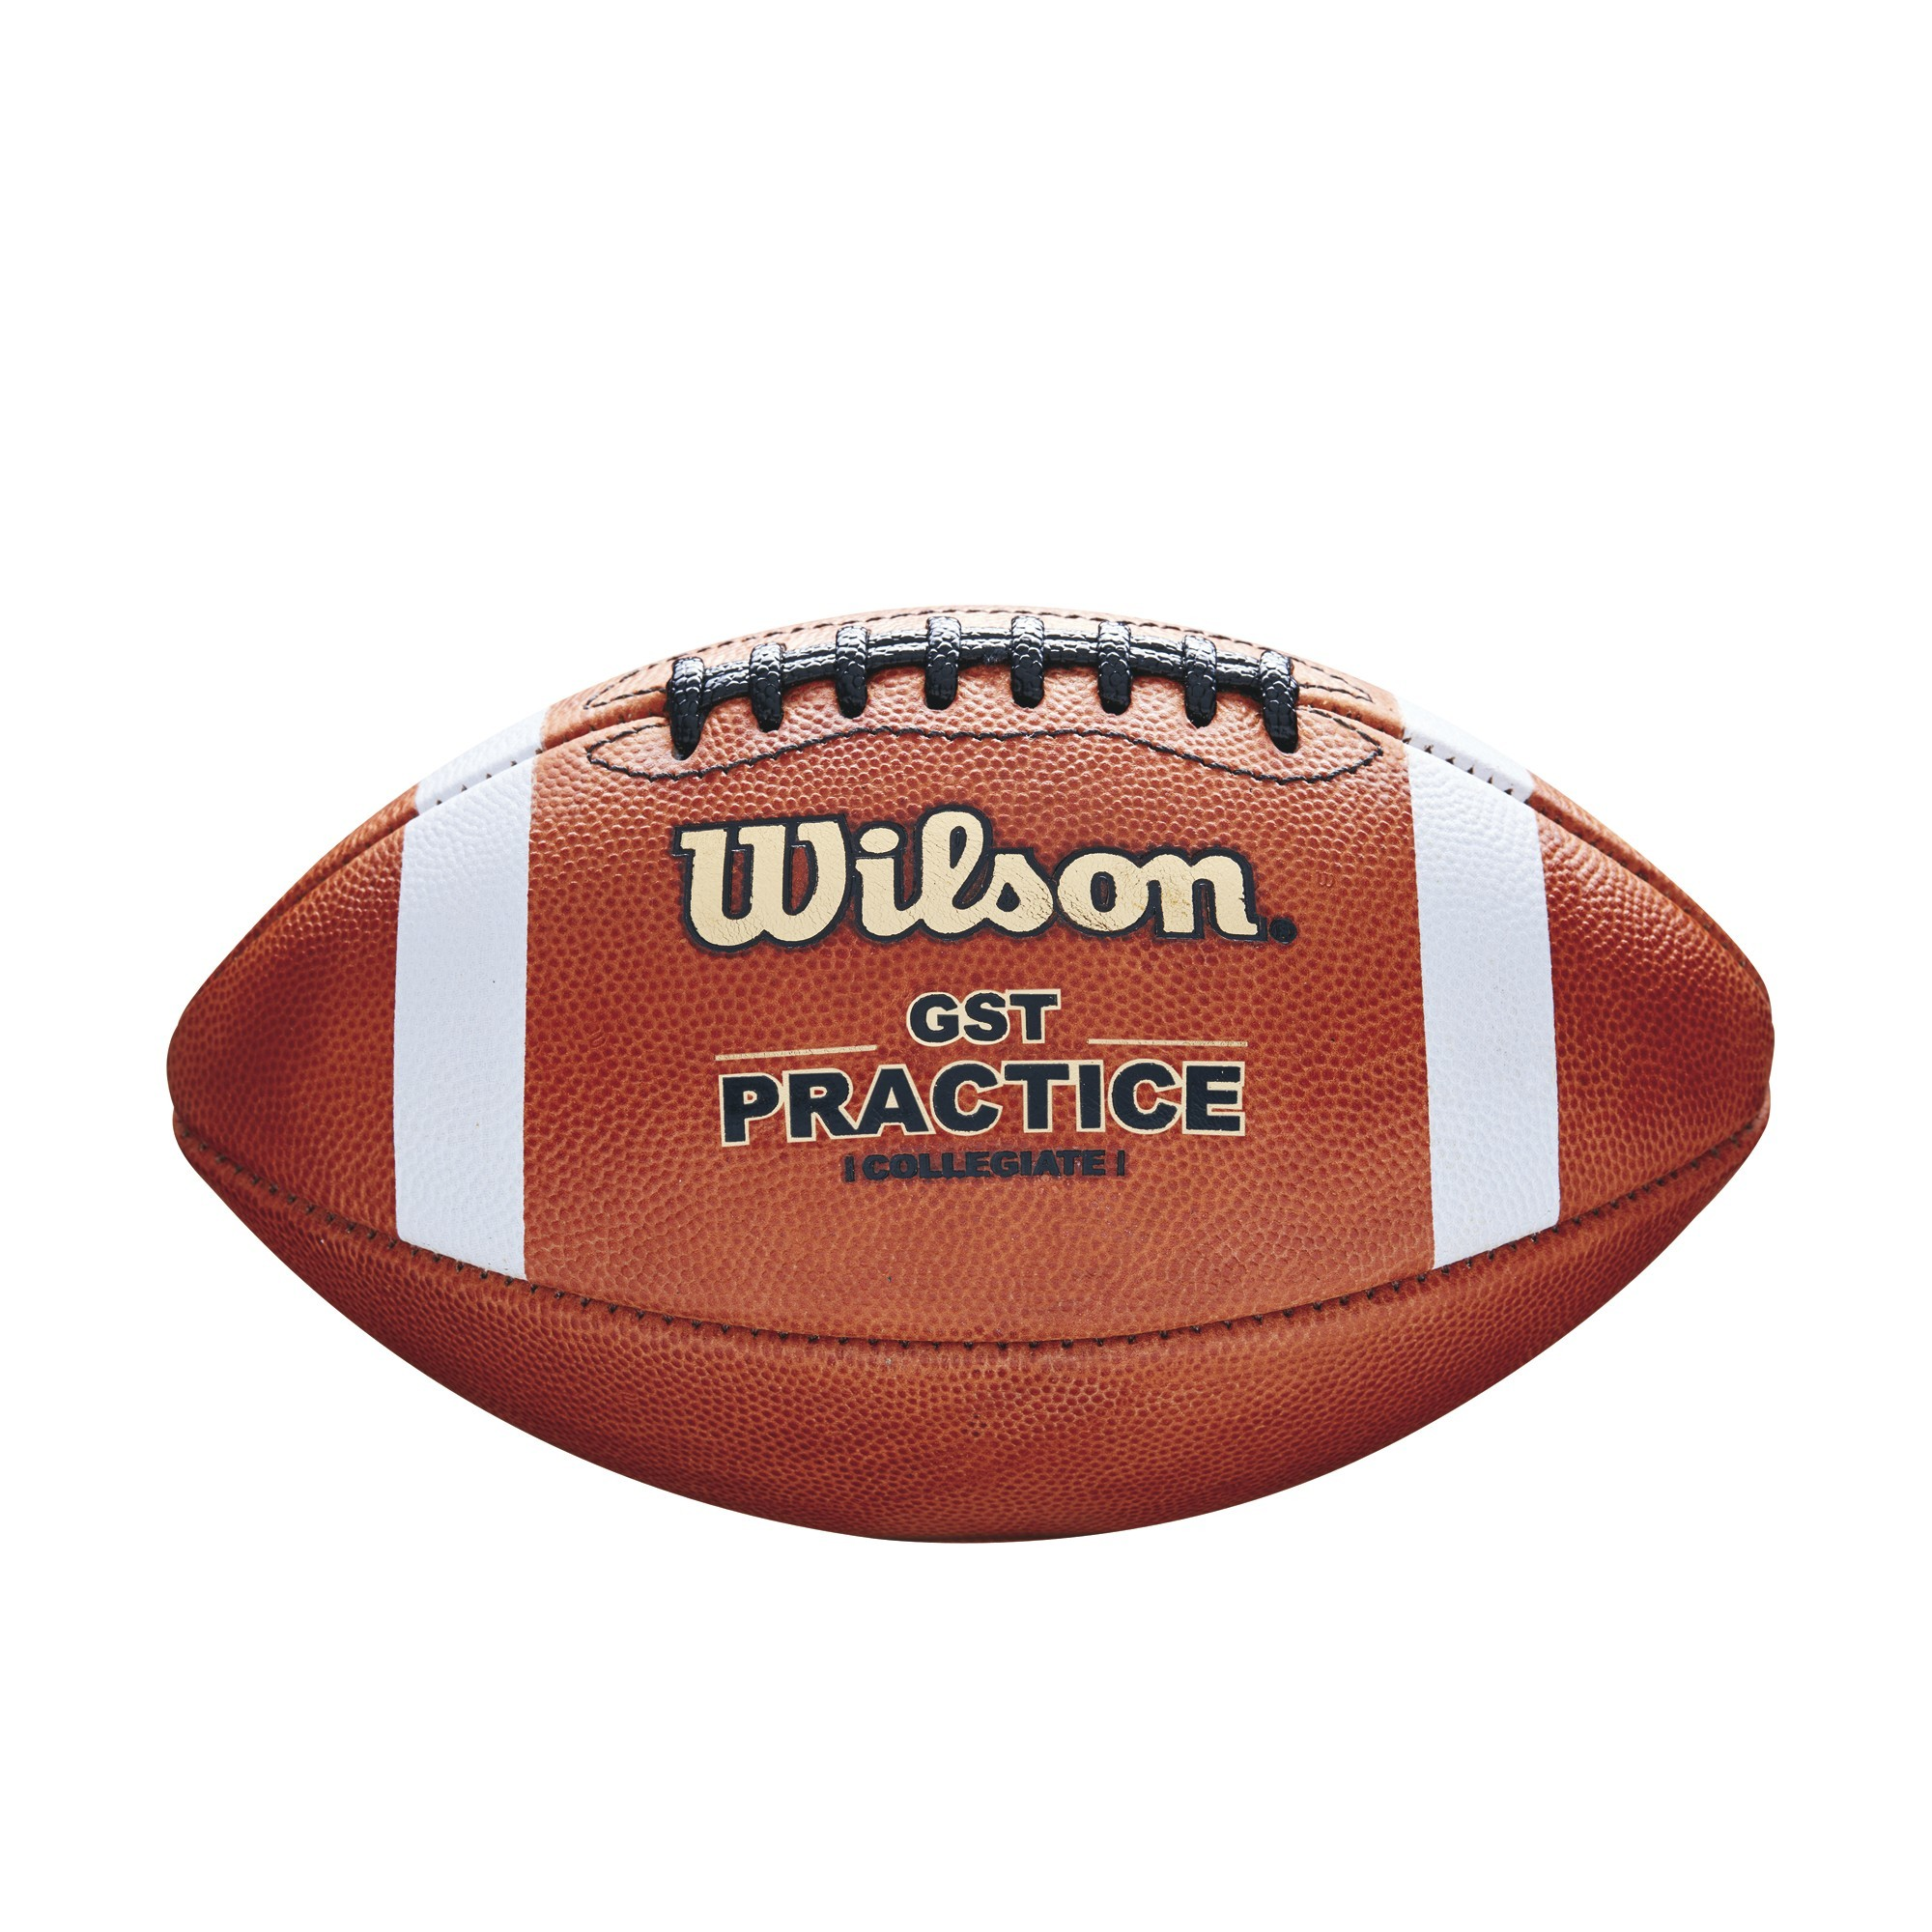 1003 GST LEATHER PRACTICE FOOTBALL | Wilson Sporting Goods